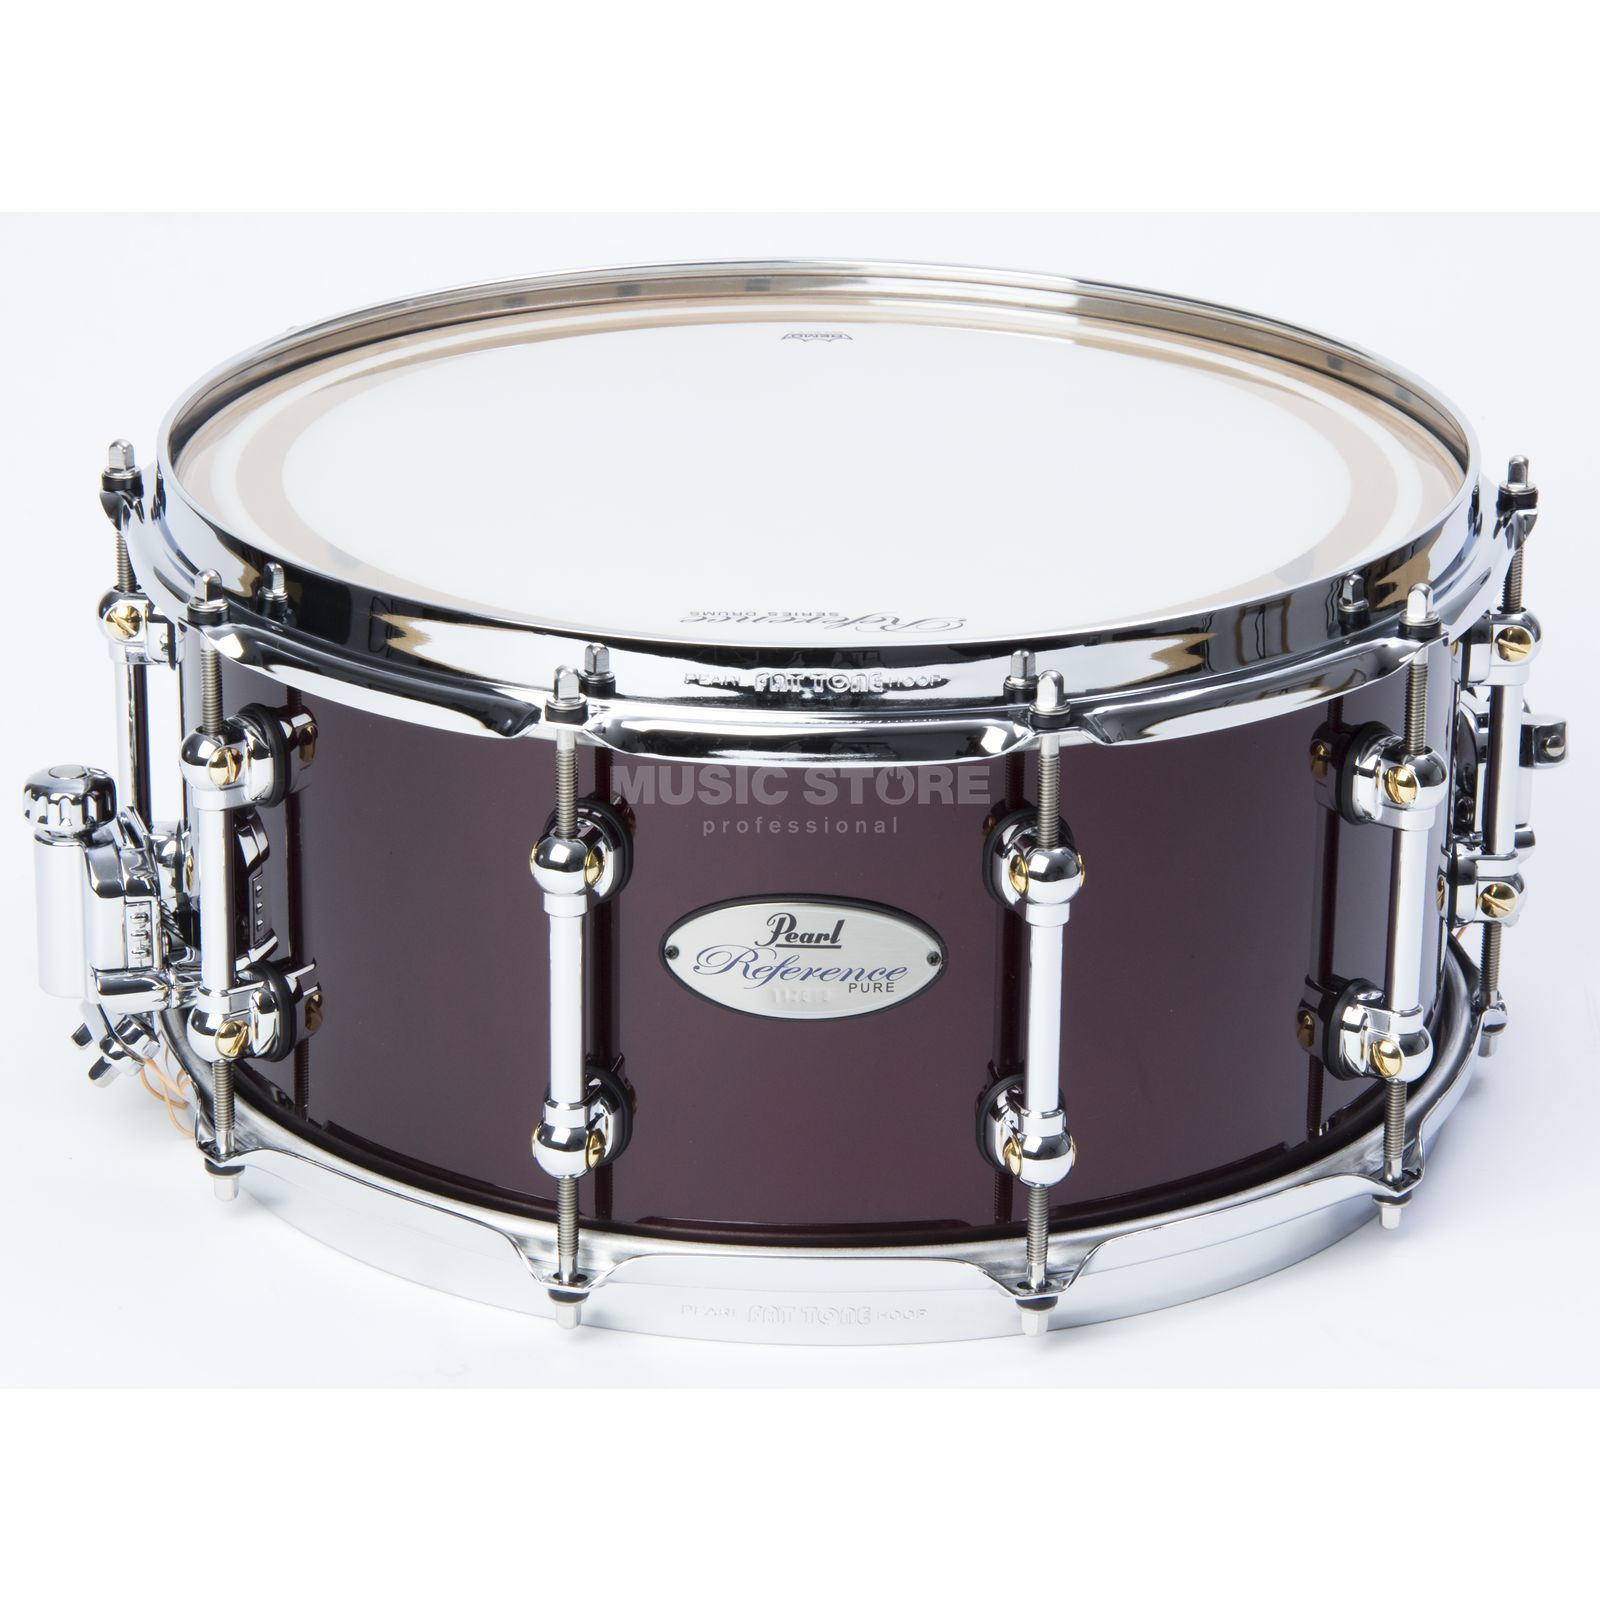 "Pearl Reference Pure Snare 14""x6,5"", Black Cherry #335 Produktbild"